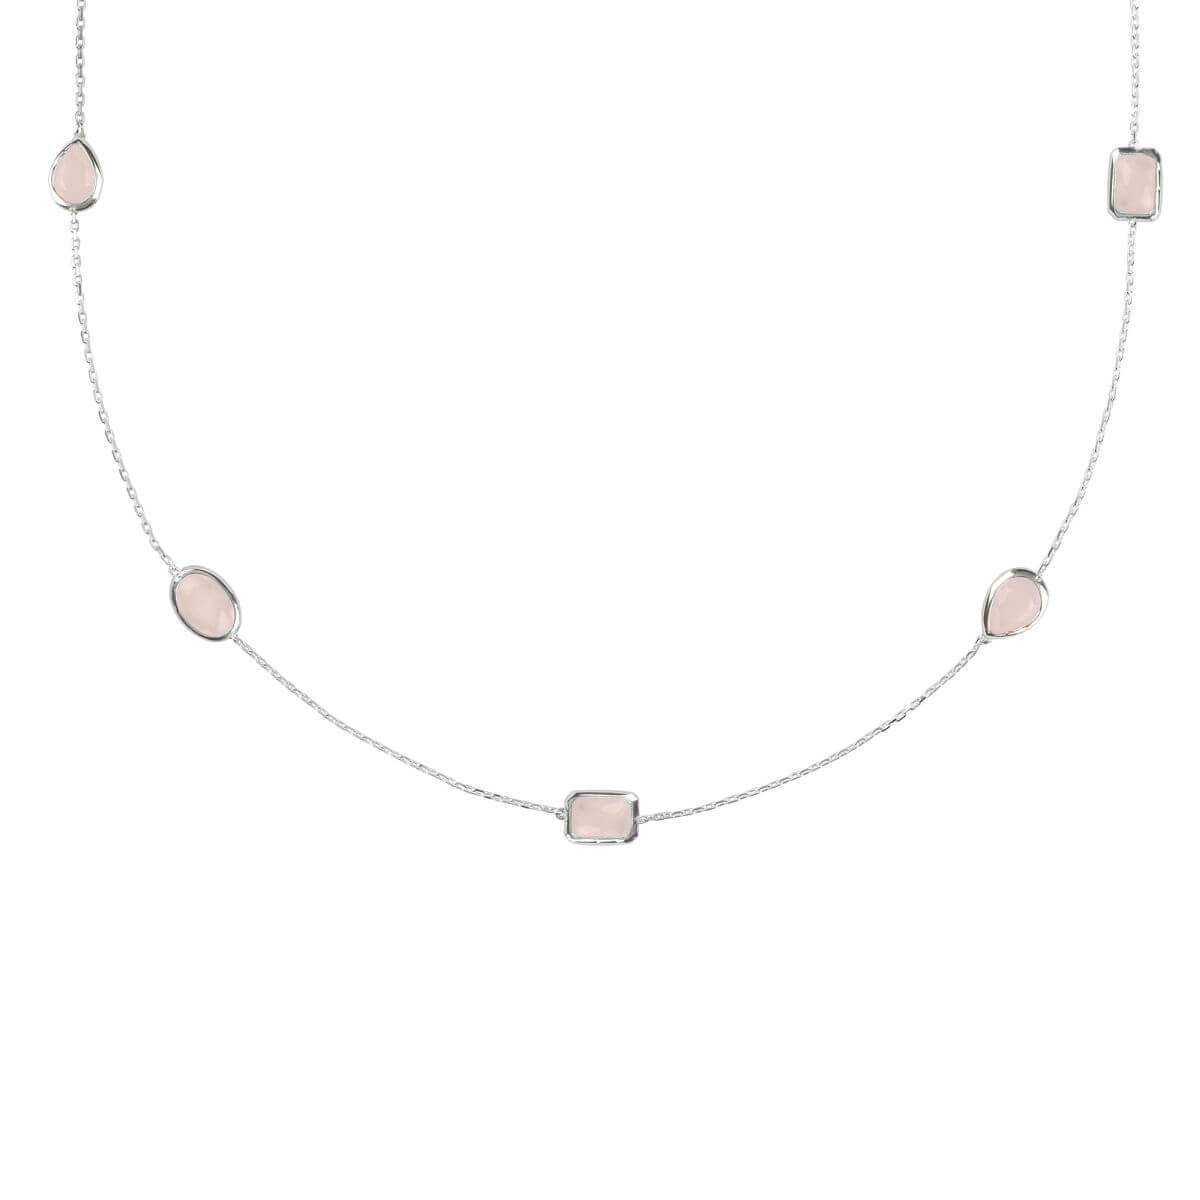 Latelita London Venice Long Chain Necklace Silver Rose Quartz 2dTzmJej